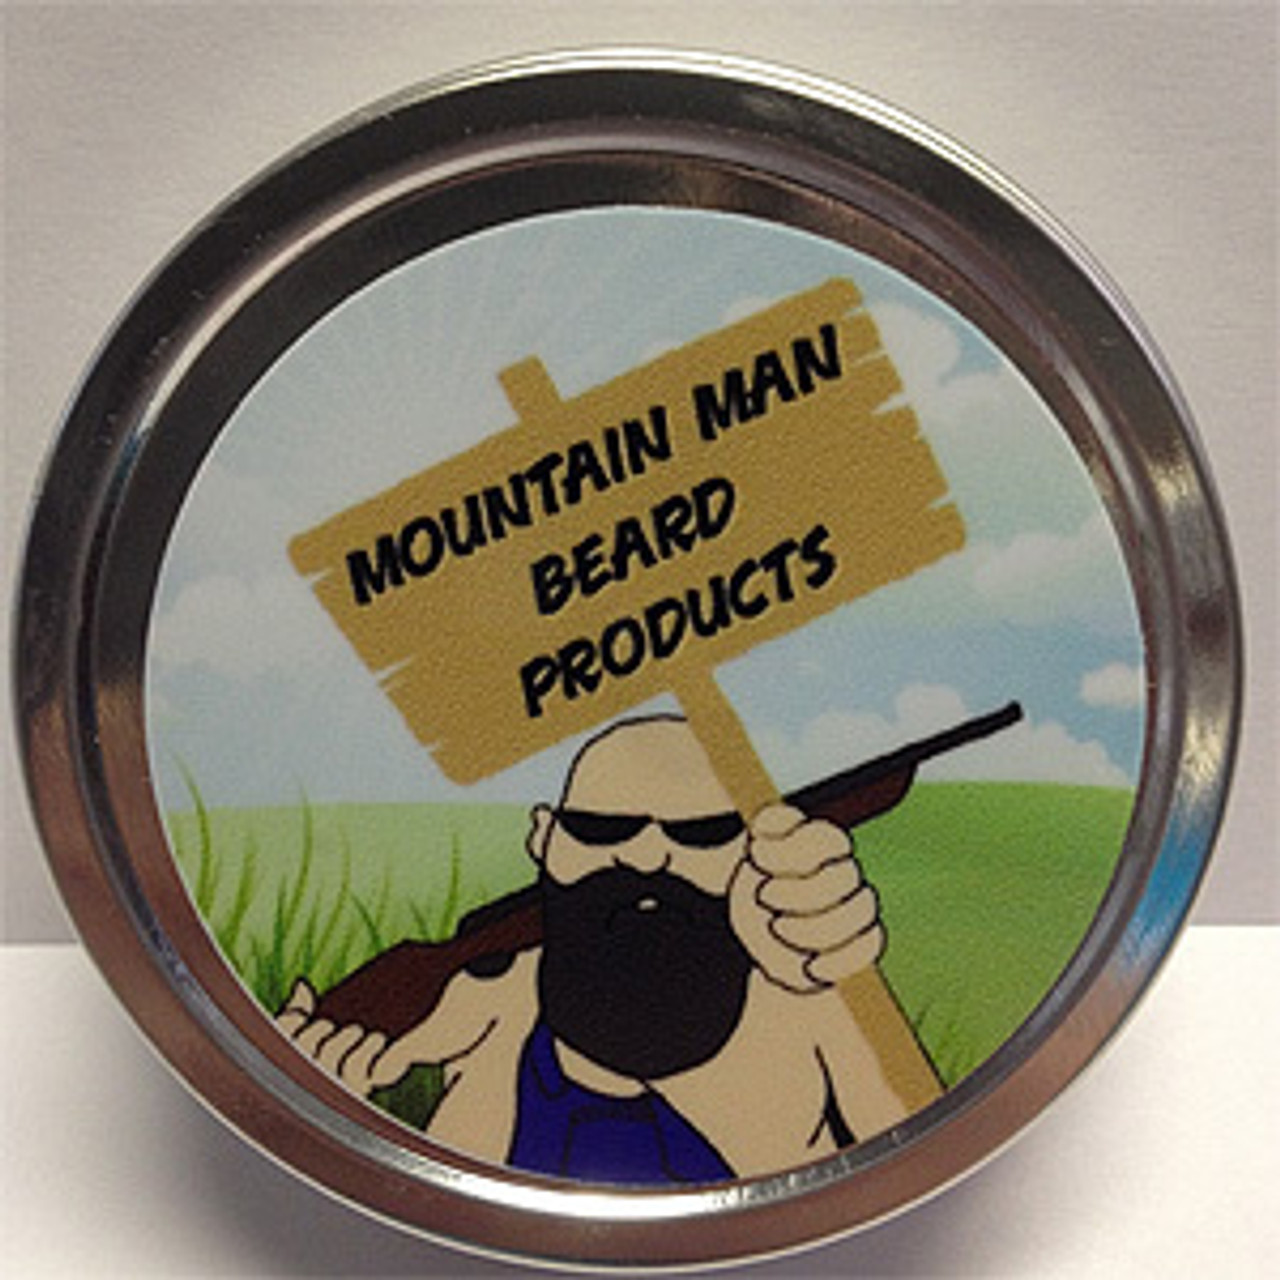 Beard Oil and Facial Accessories